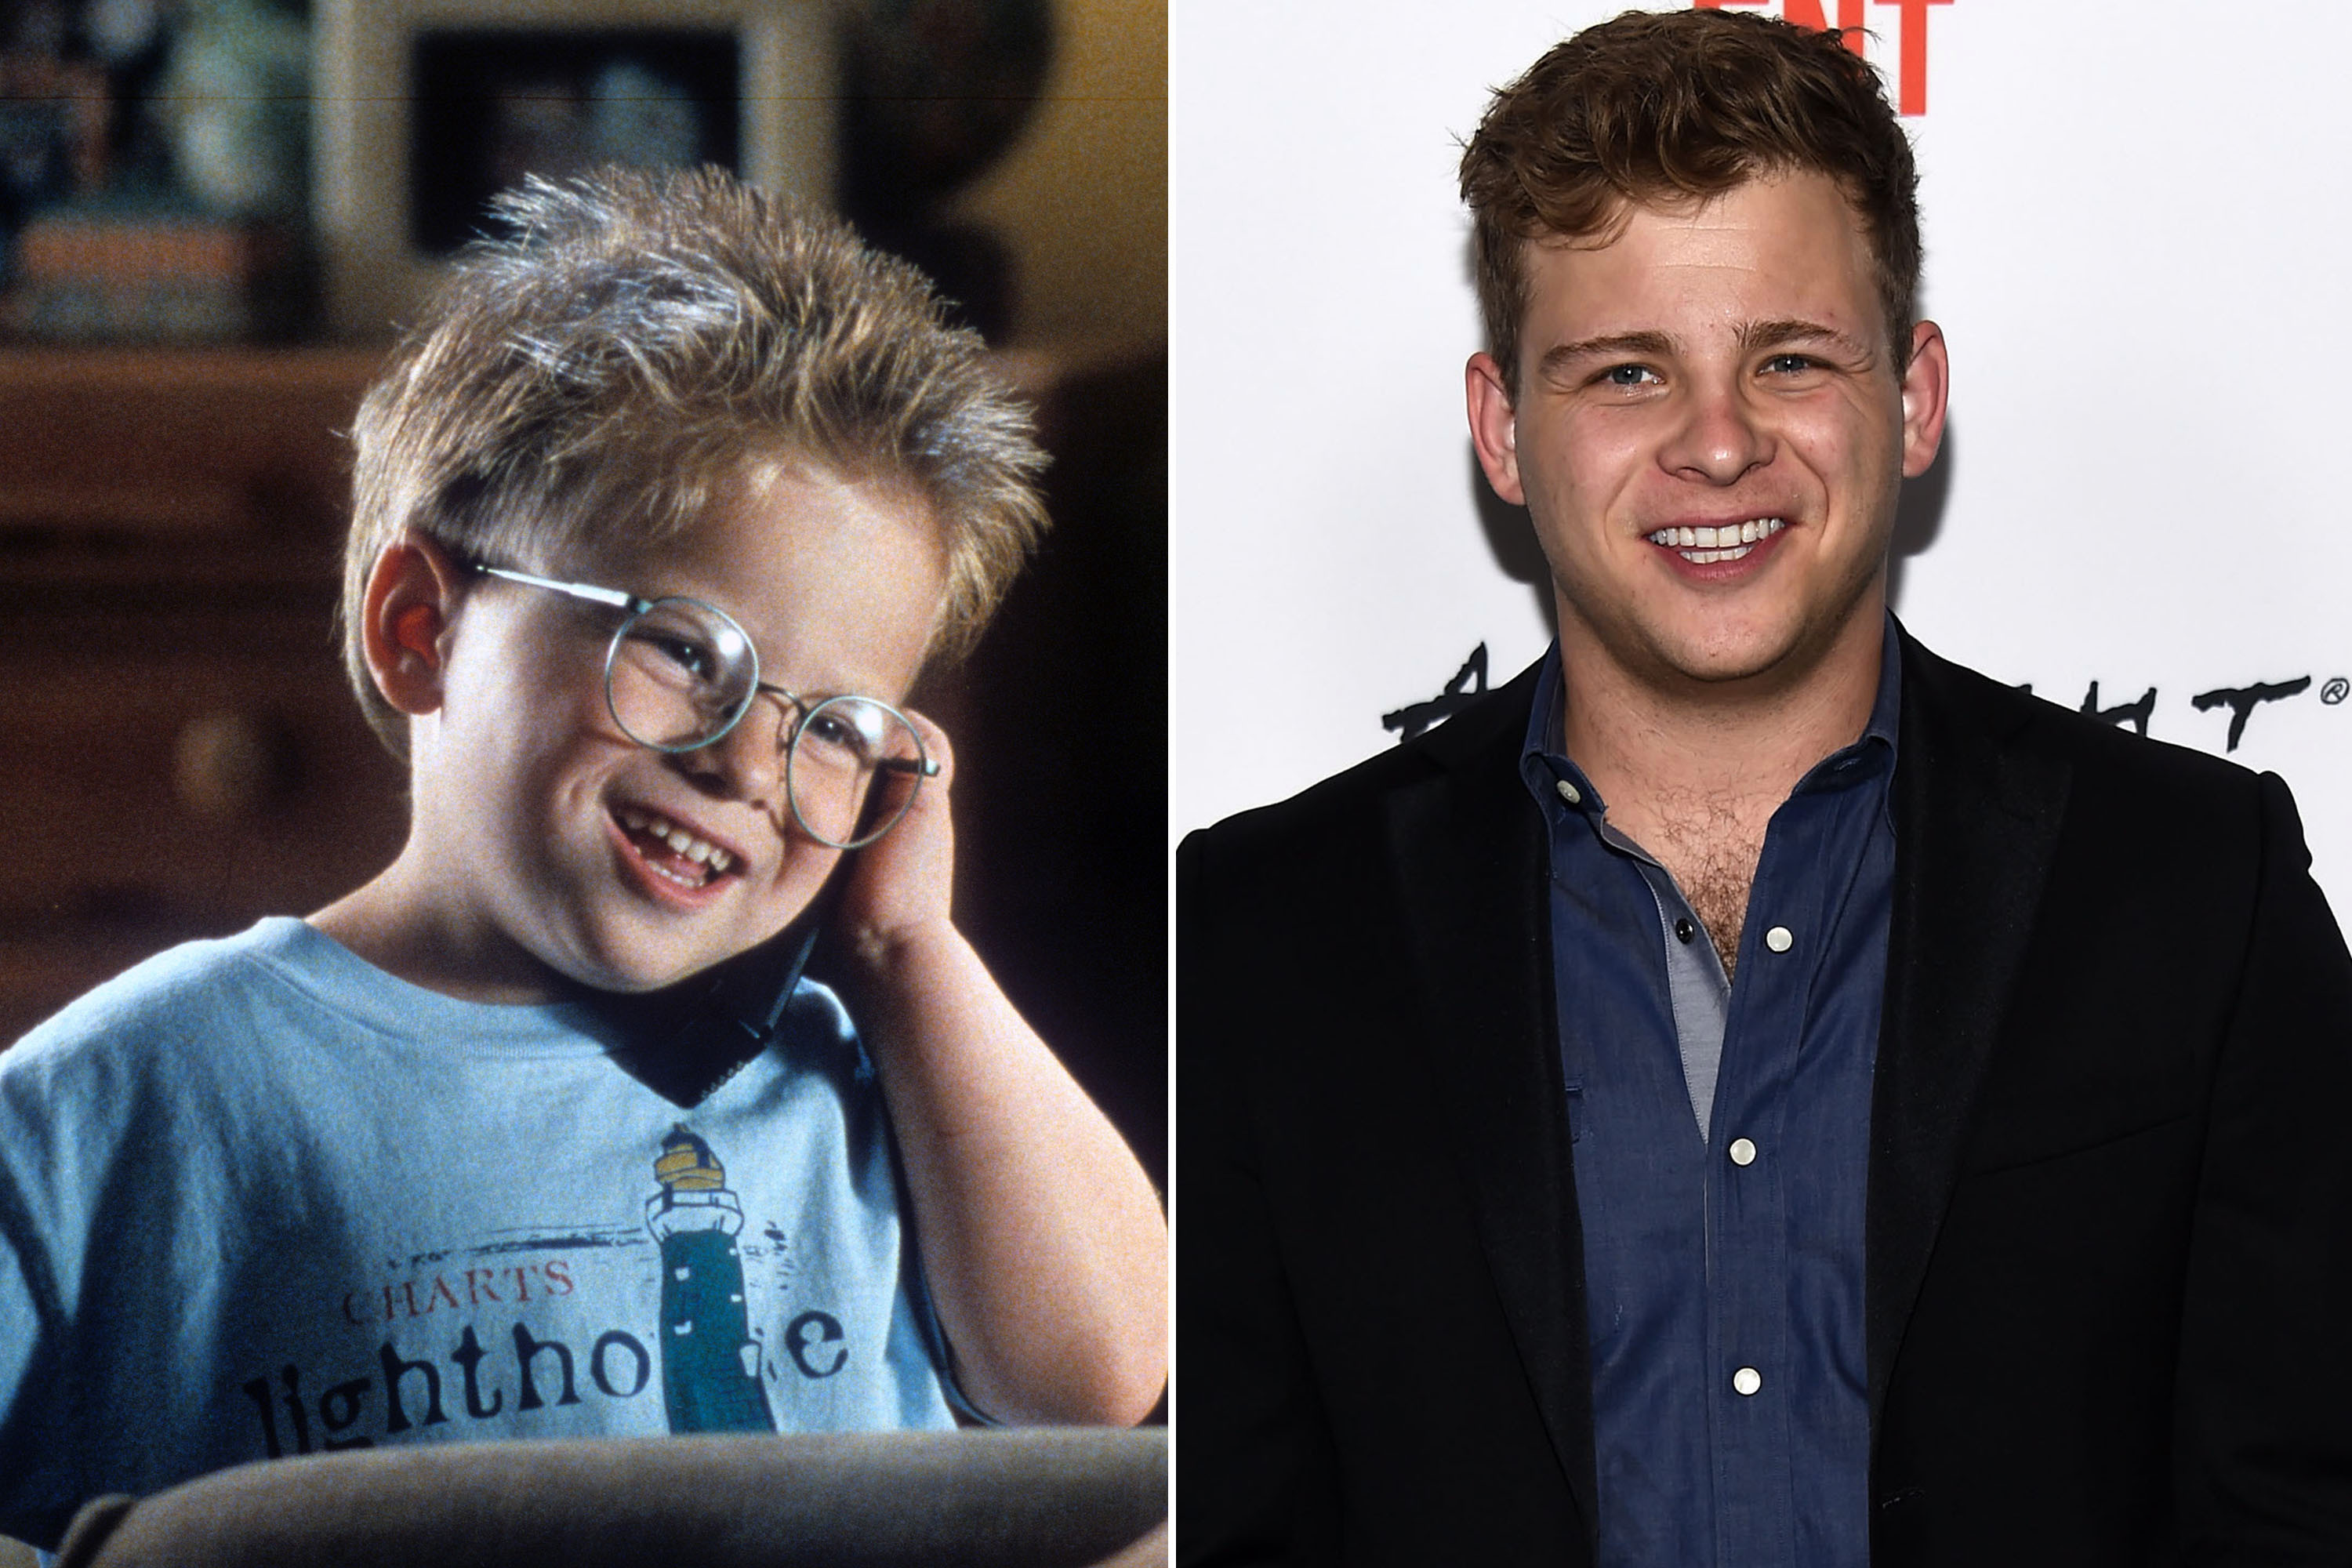 jonathan lipnicki before and after